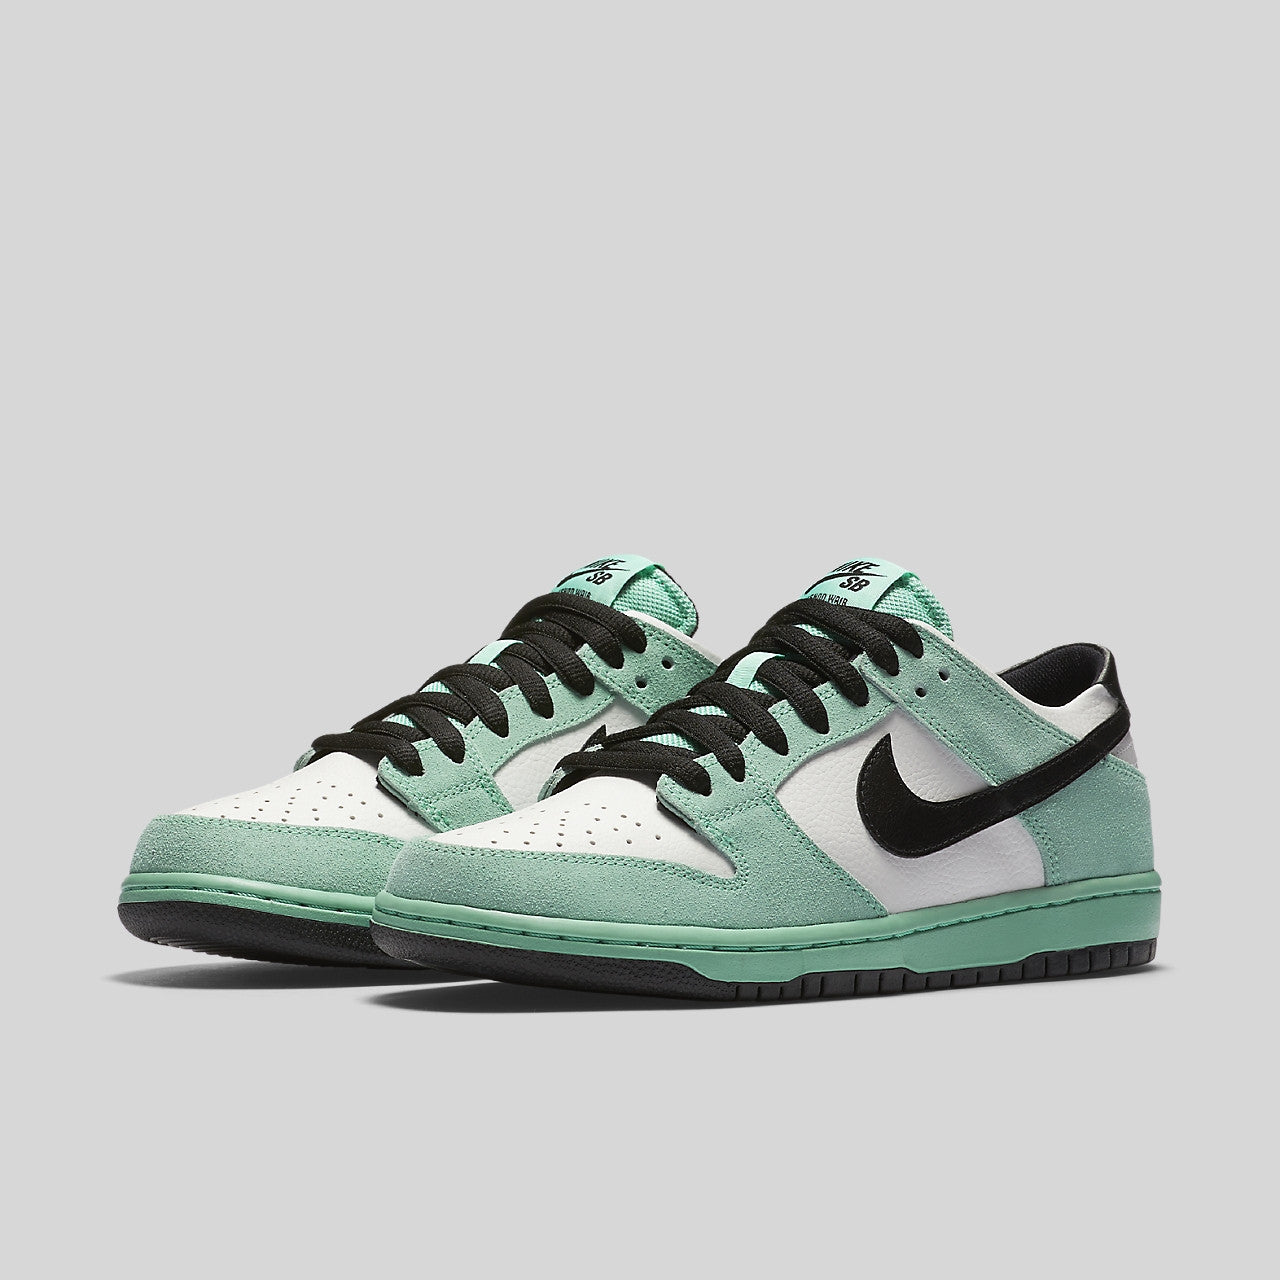 official photos 7507b df99f Nike Dunk Low Pro IW Sea Crystal